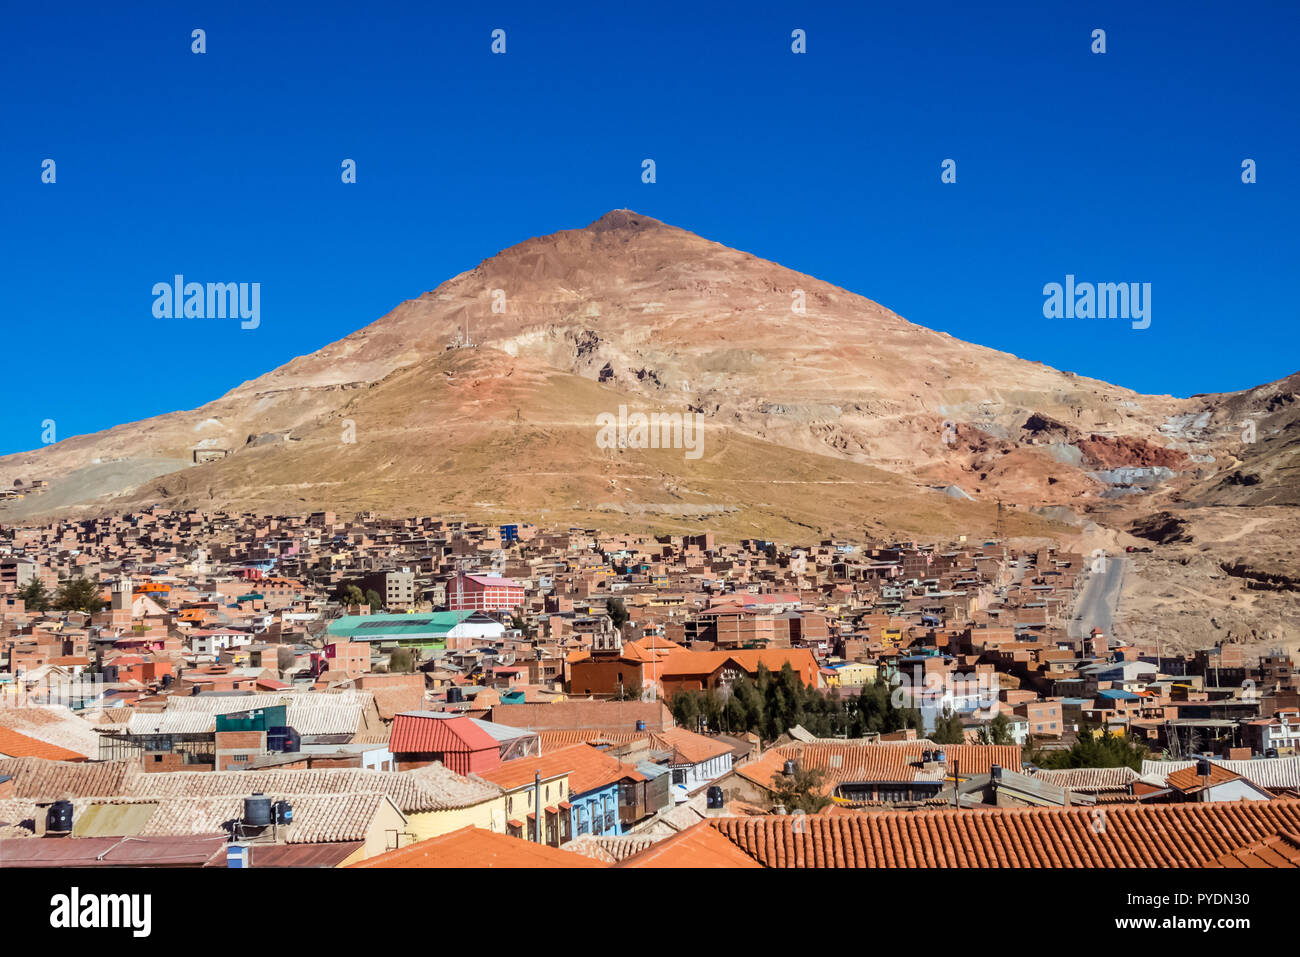 Potosi (UNESCO) in Bolivia - the world's highest city (4070m). view over the city and the colored mountain, Cerro Rico the working silver mines - Stock Image